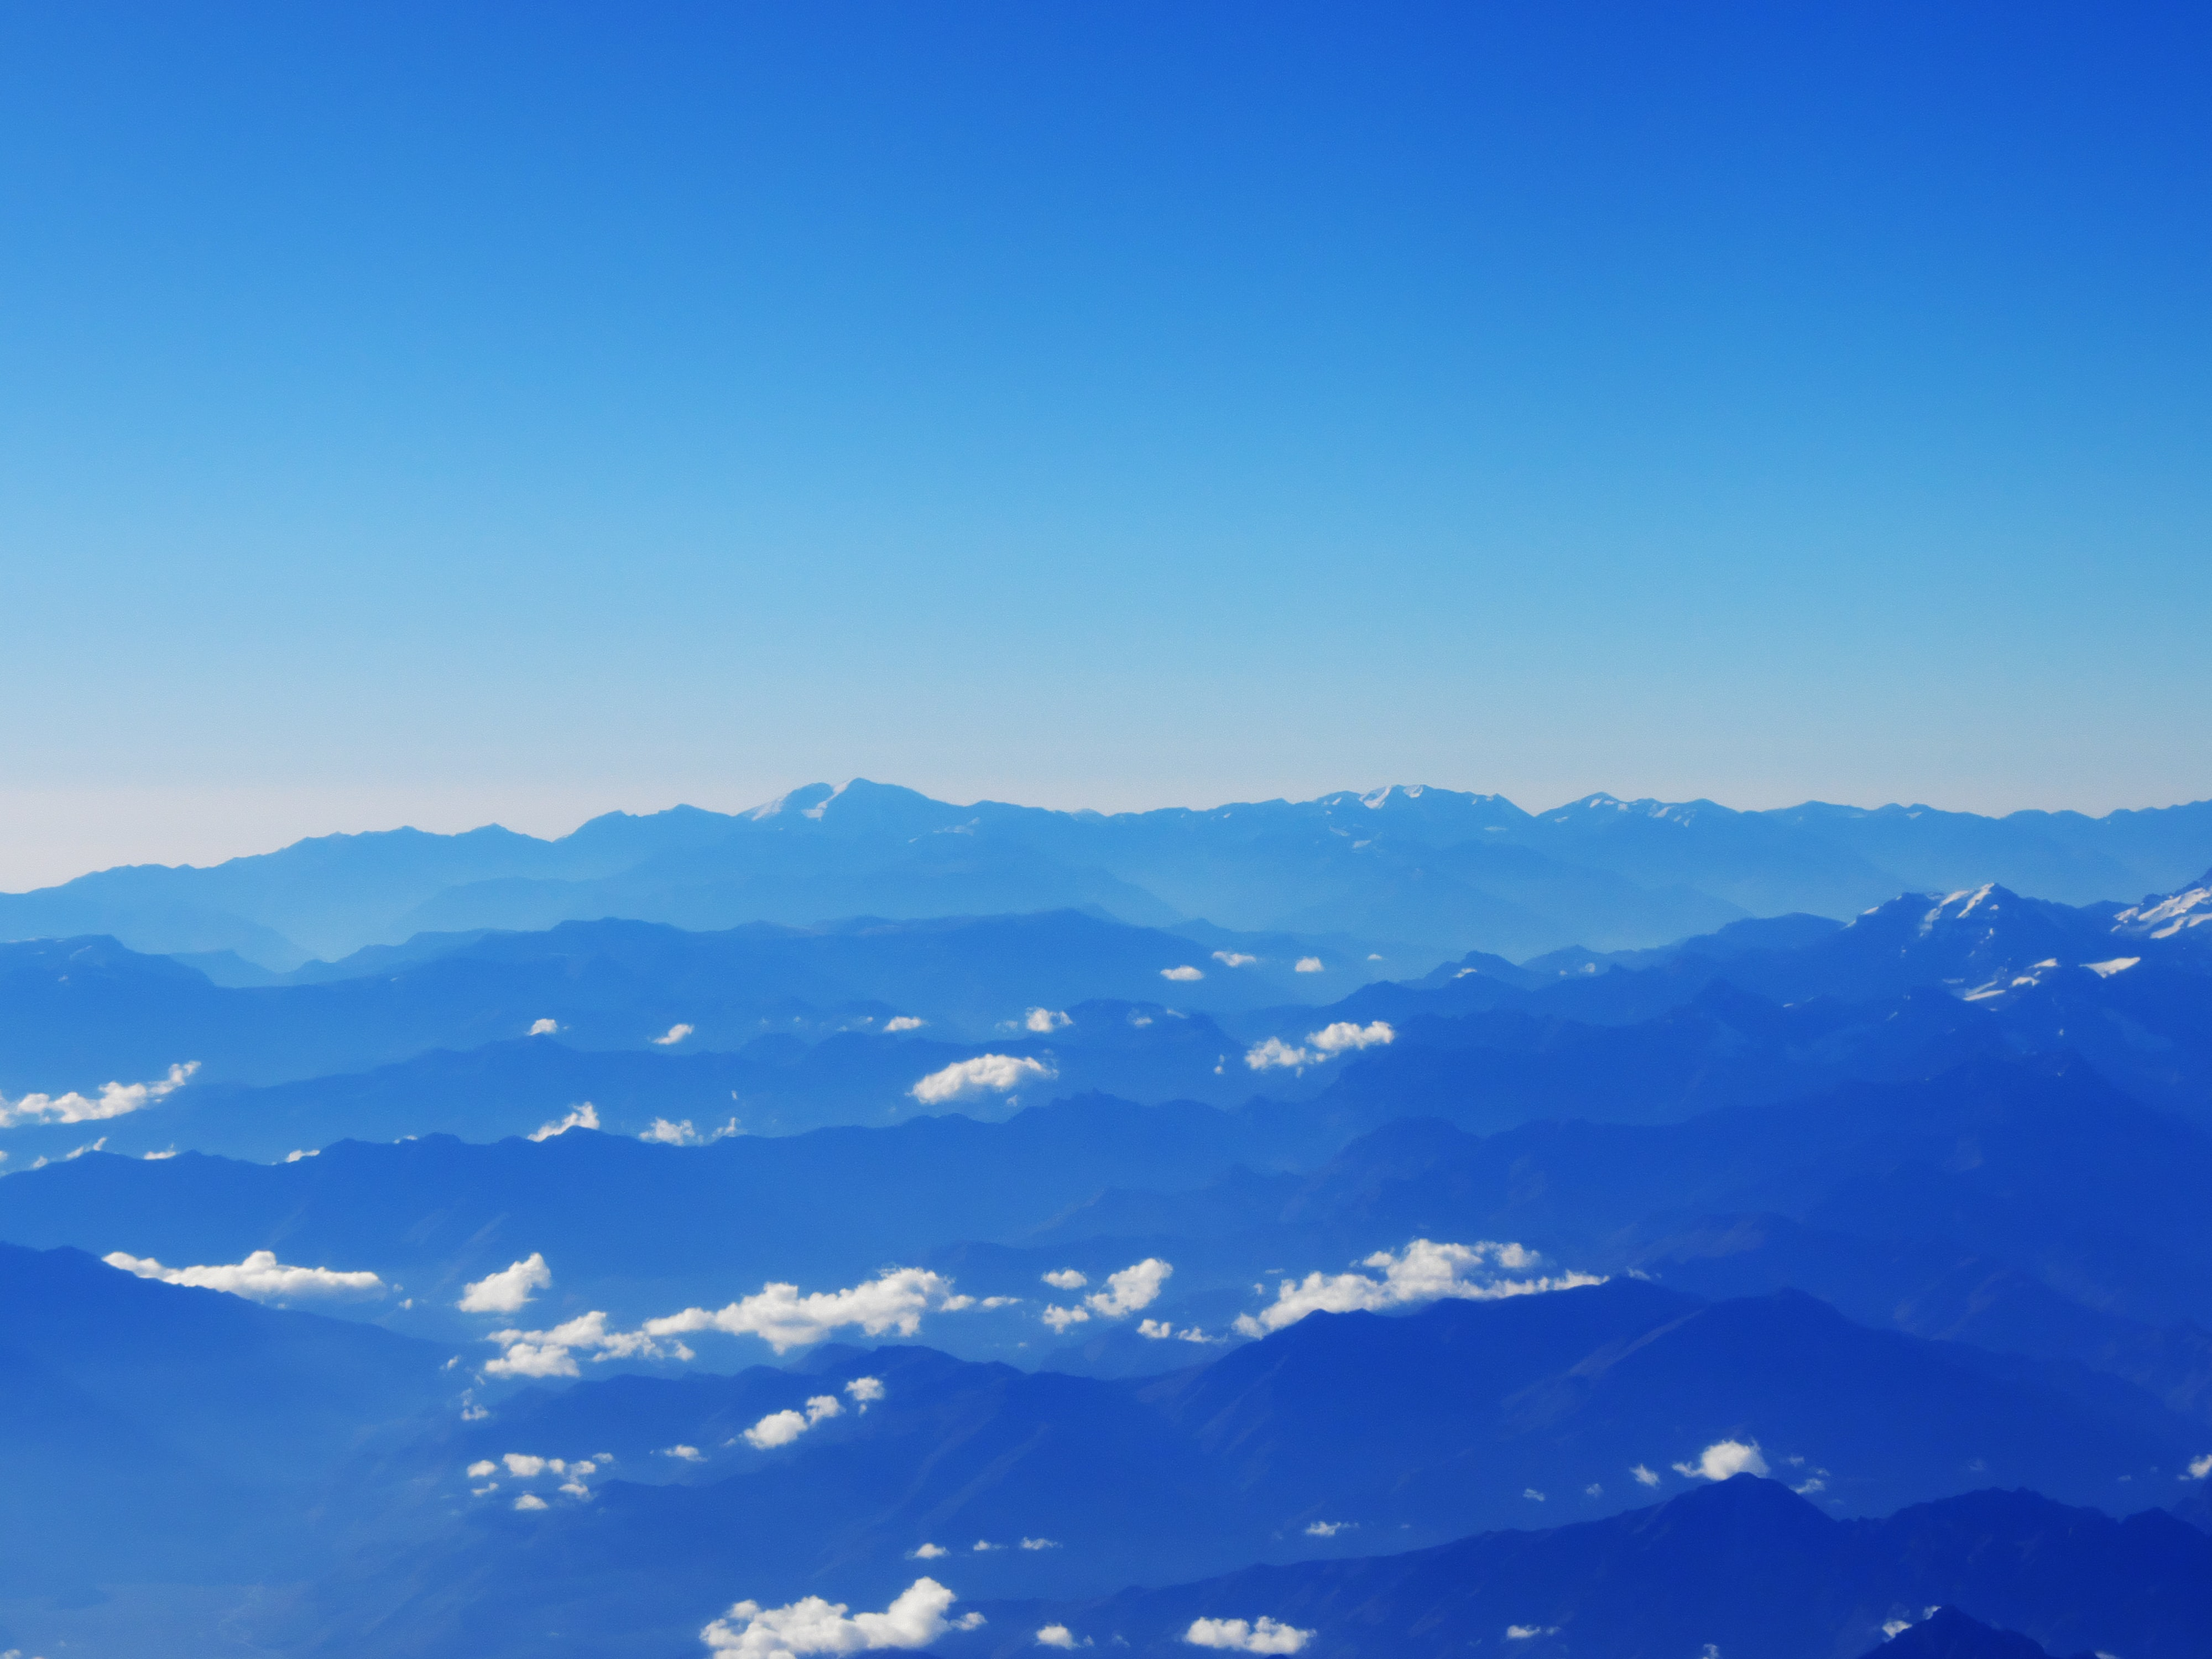 mountains under blue sky during daytime